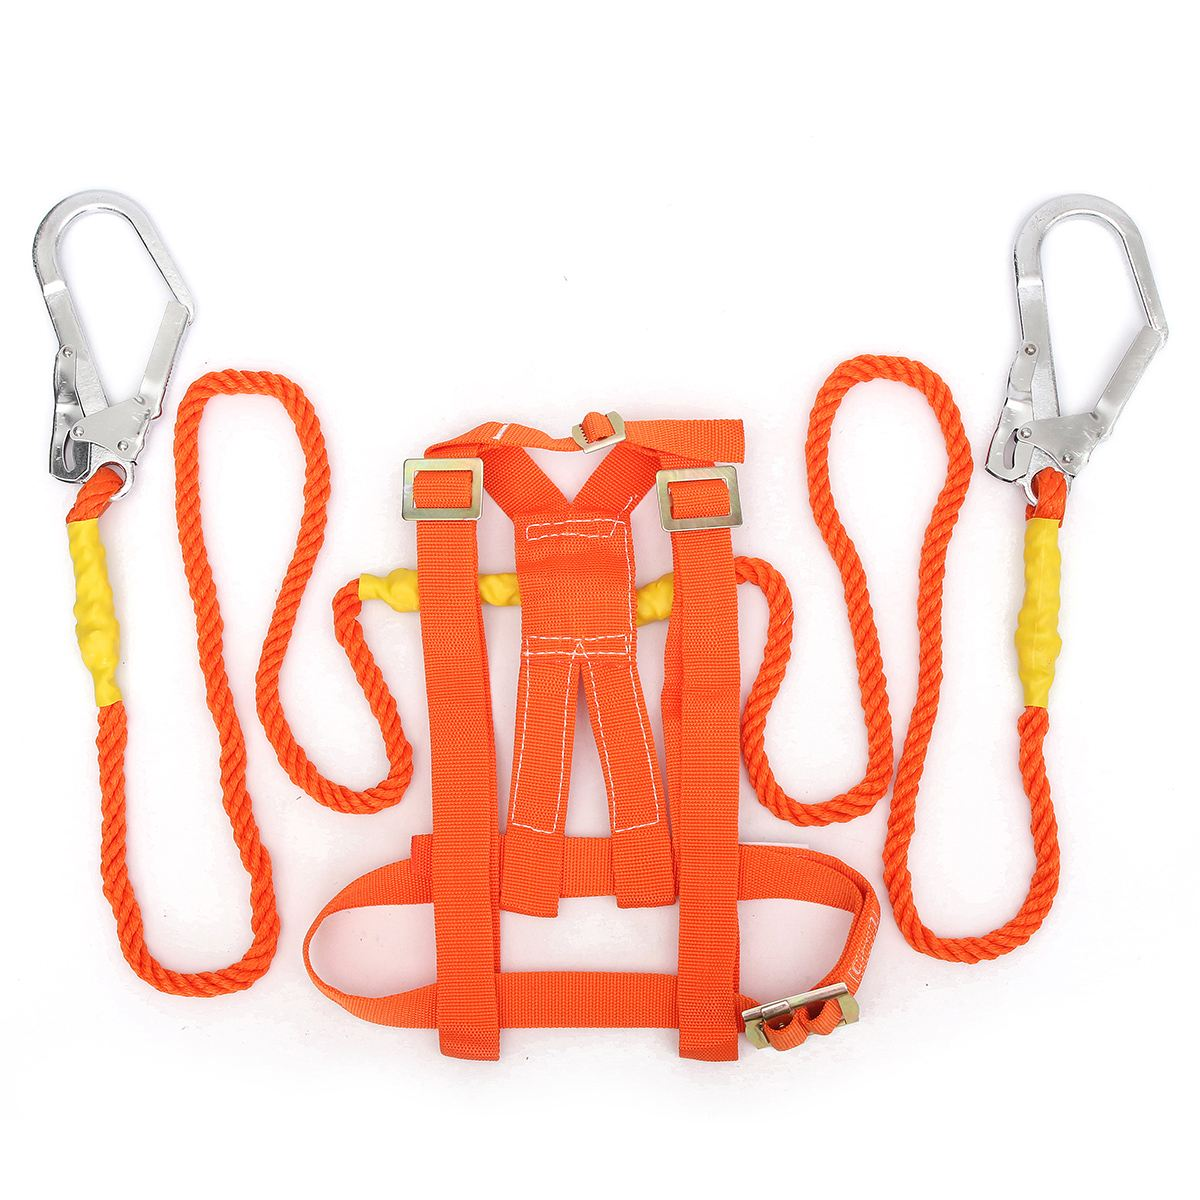 NEW Outdoor Climbing Climb Mountain Rope Safety Waist Belt Protection Equipment Workplace Safety Harness